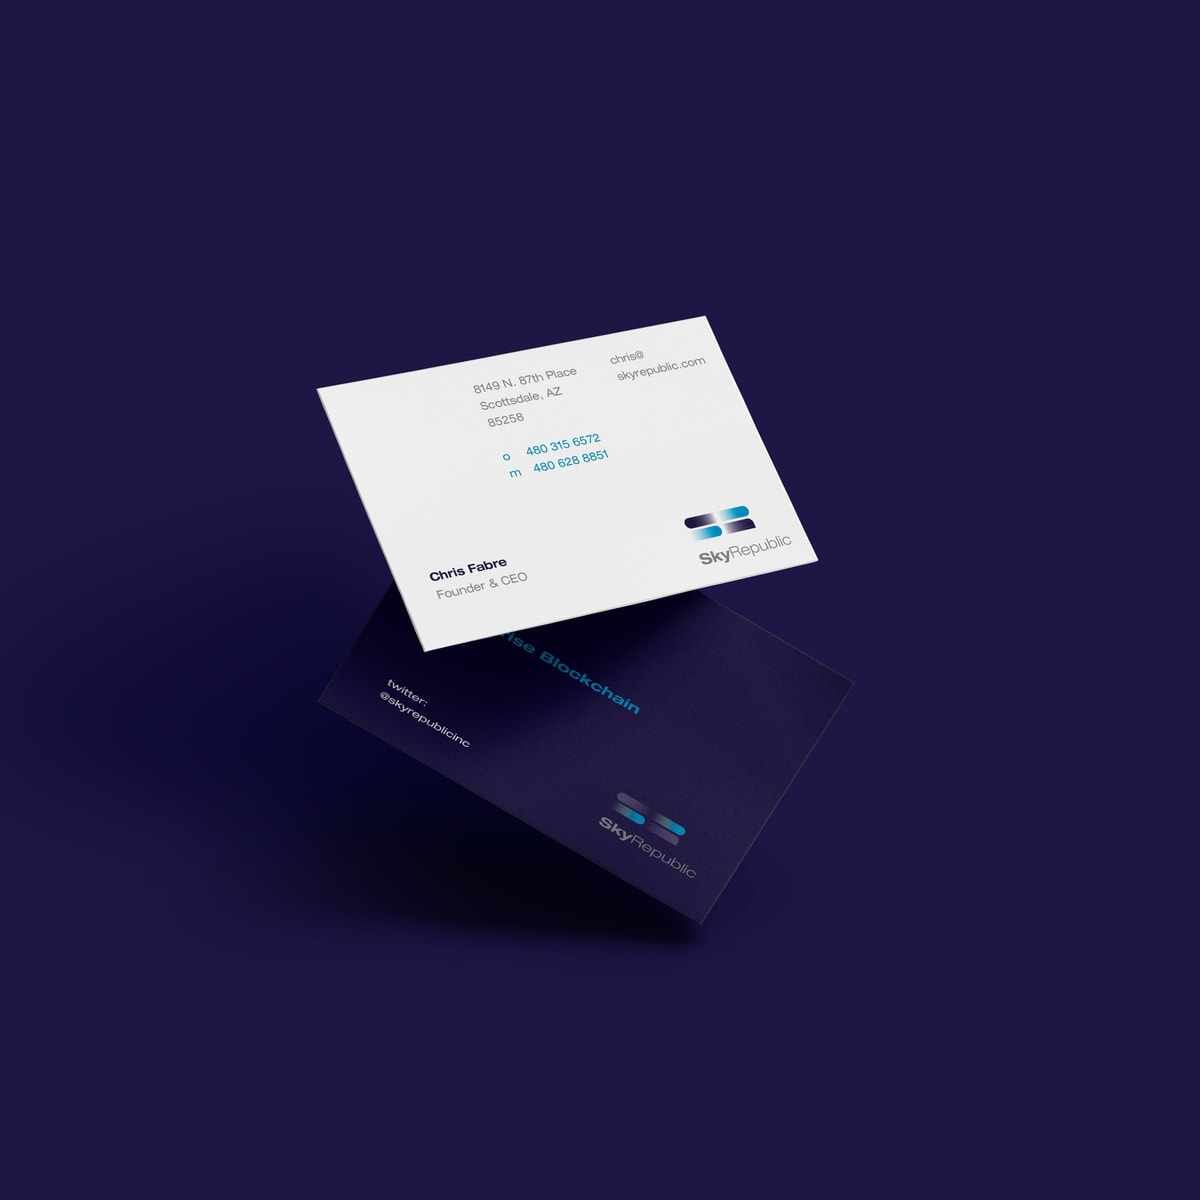 Startup branding element for Sky Republic - Business Card